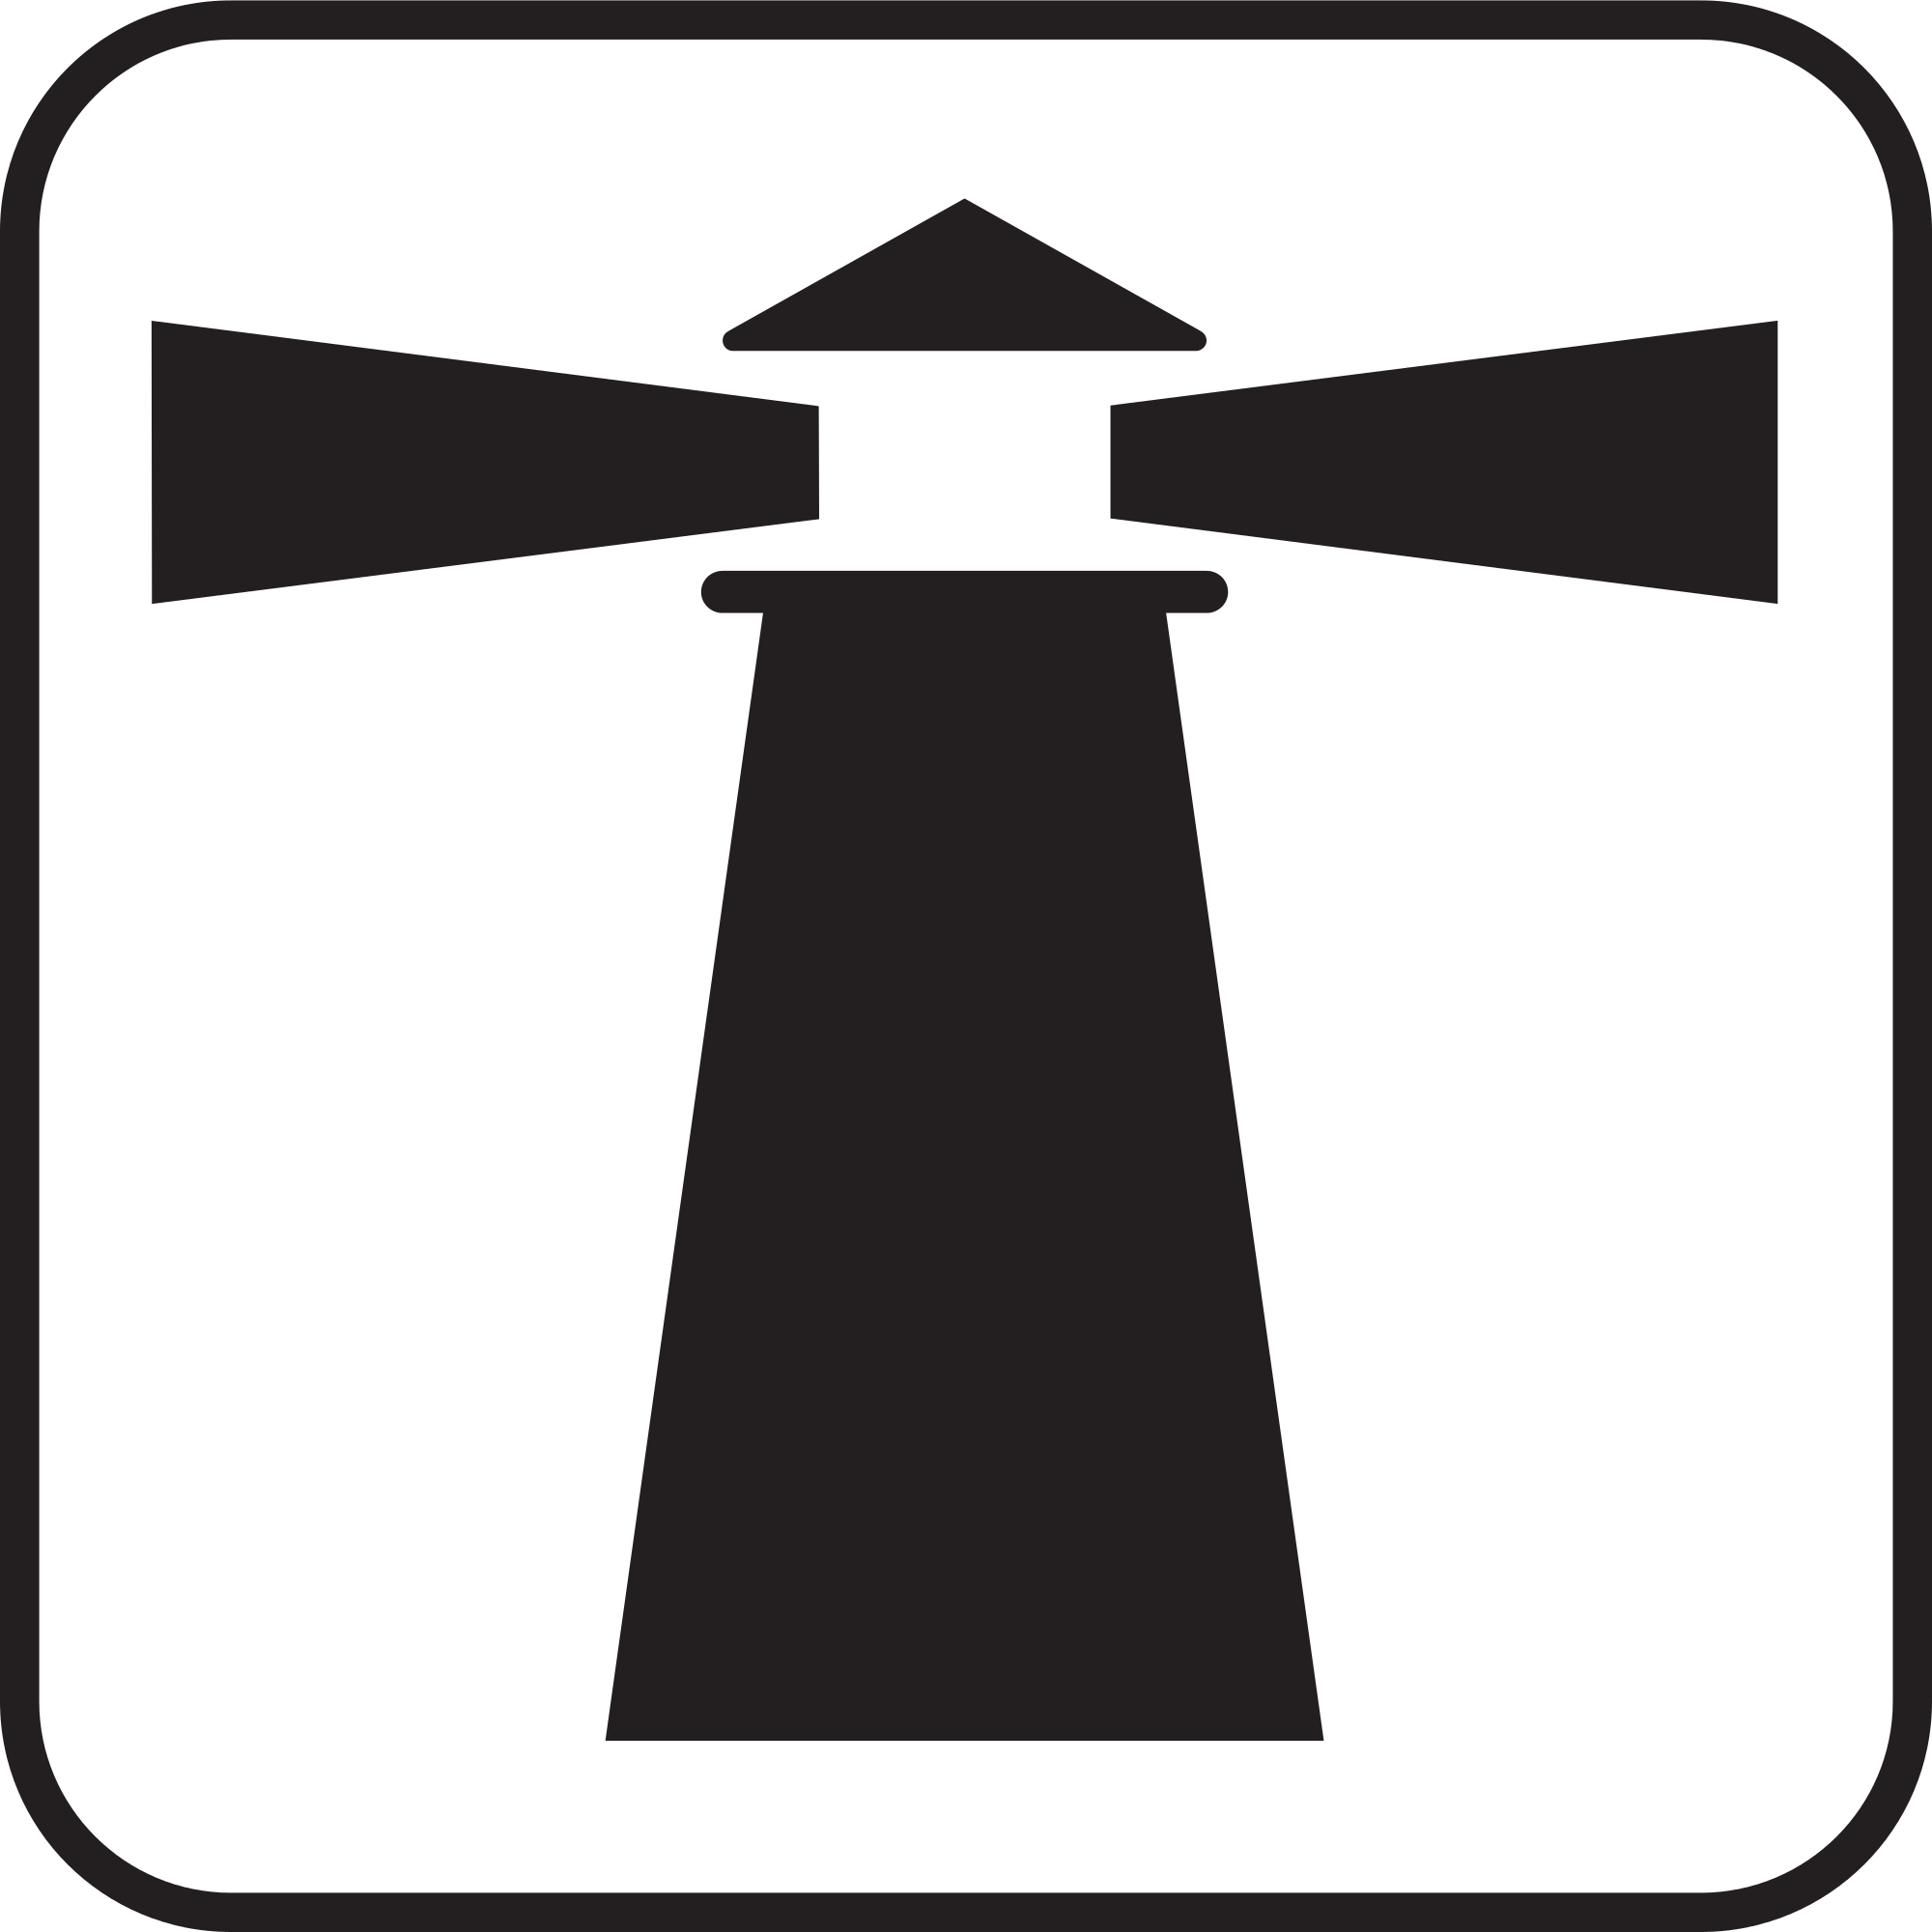 Lighthouse svg #4, Download drawings